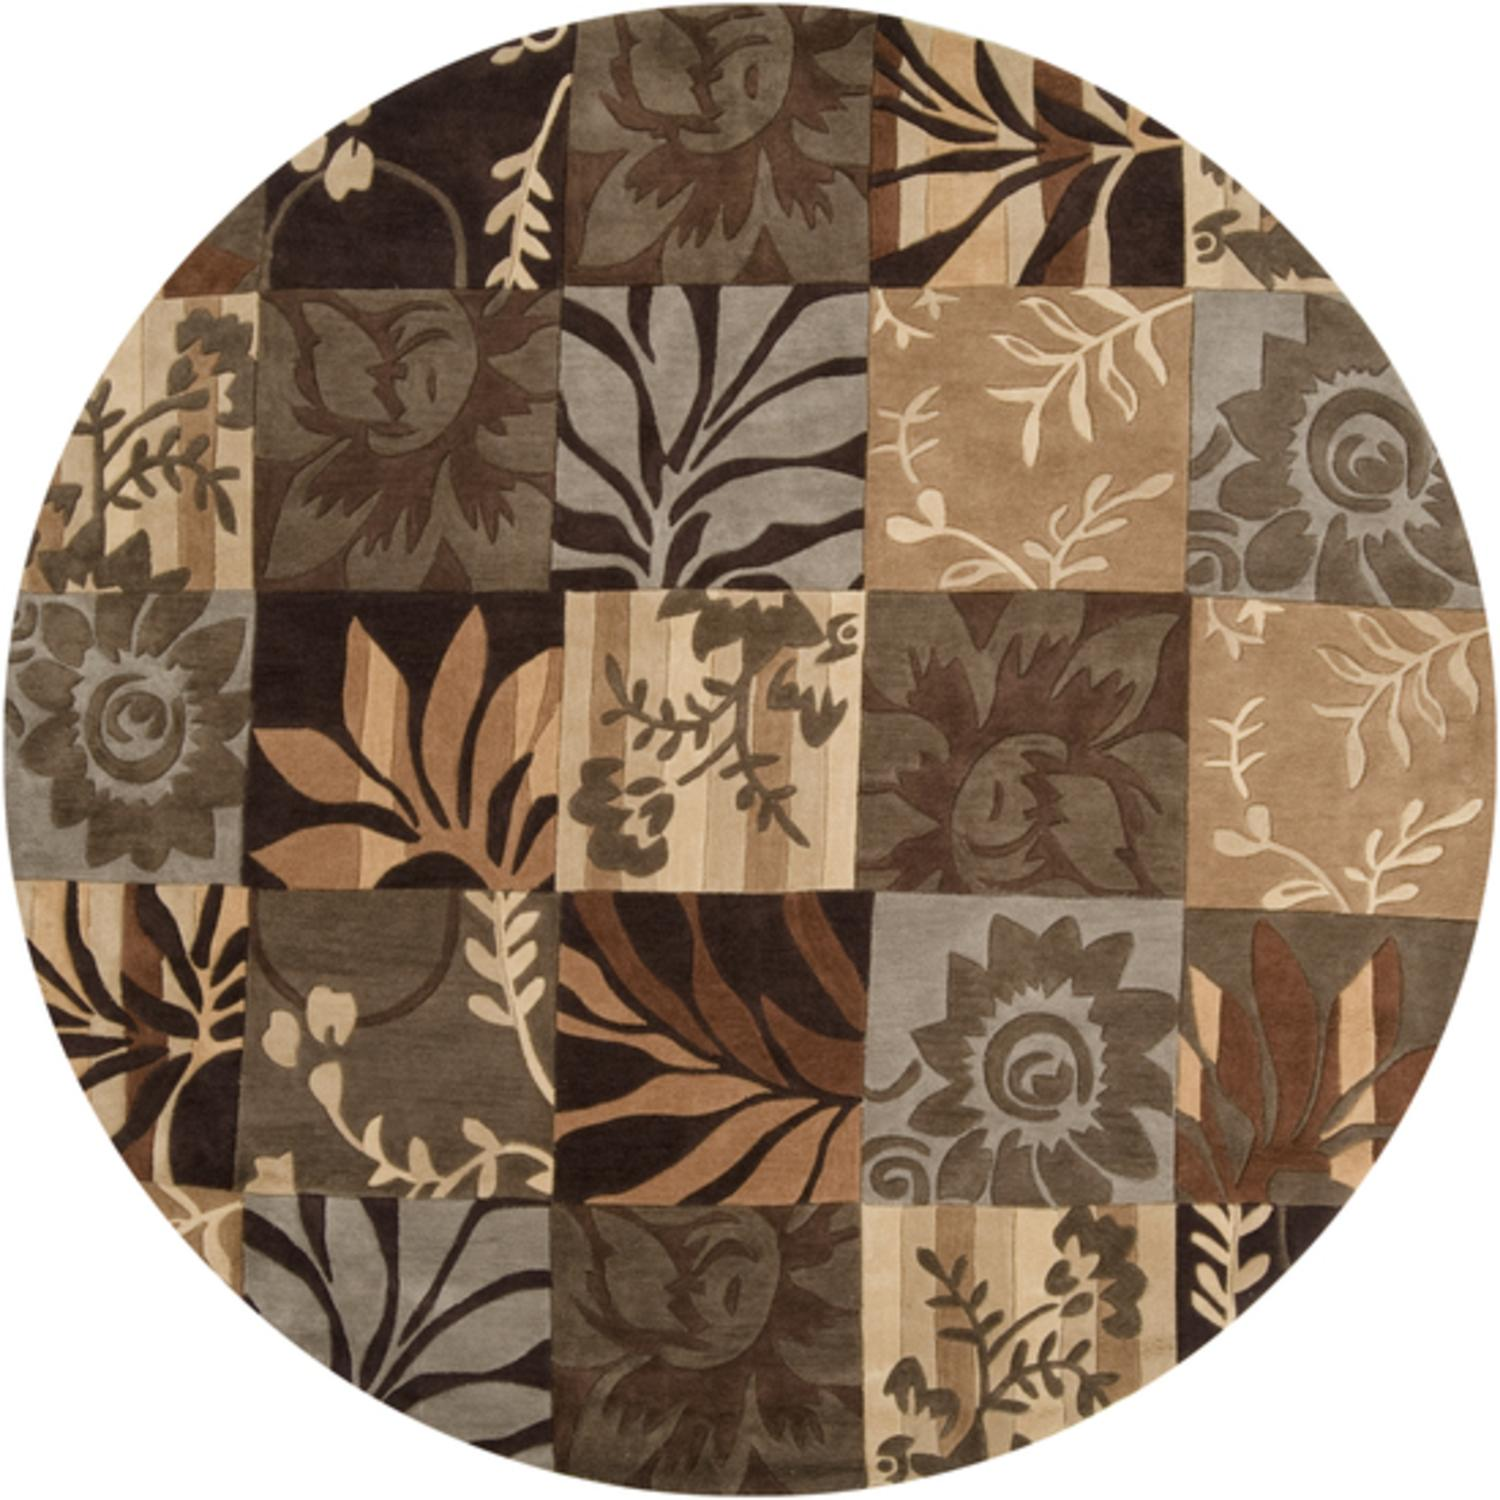 8' Botanical Menagerie Tan & Brown Hand Tufted Plush Pile Round Area Throw Rug